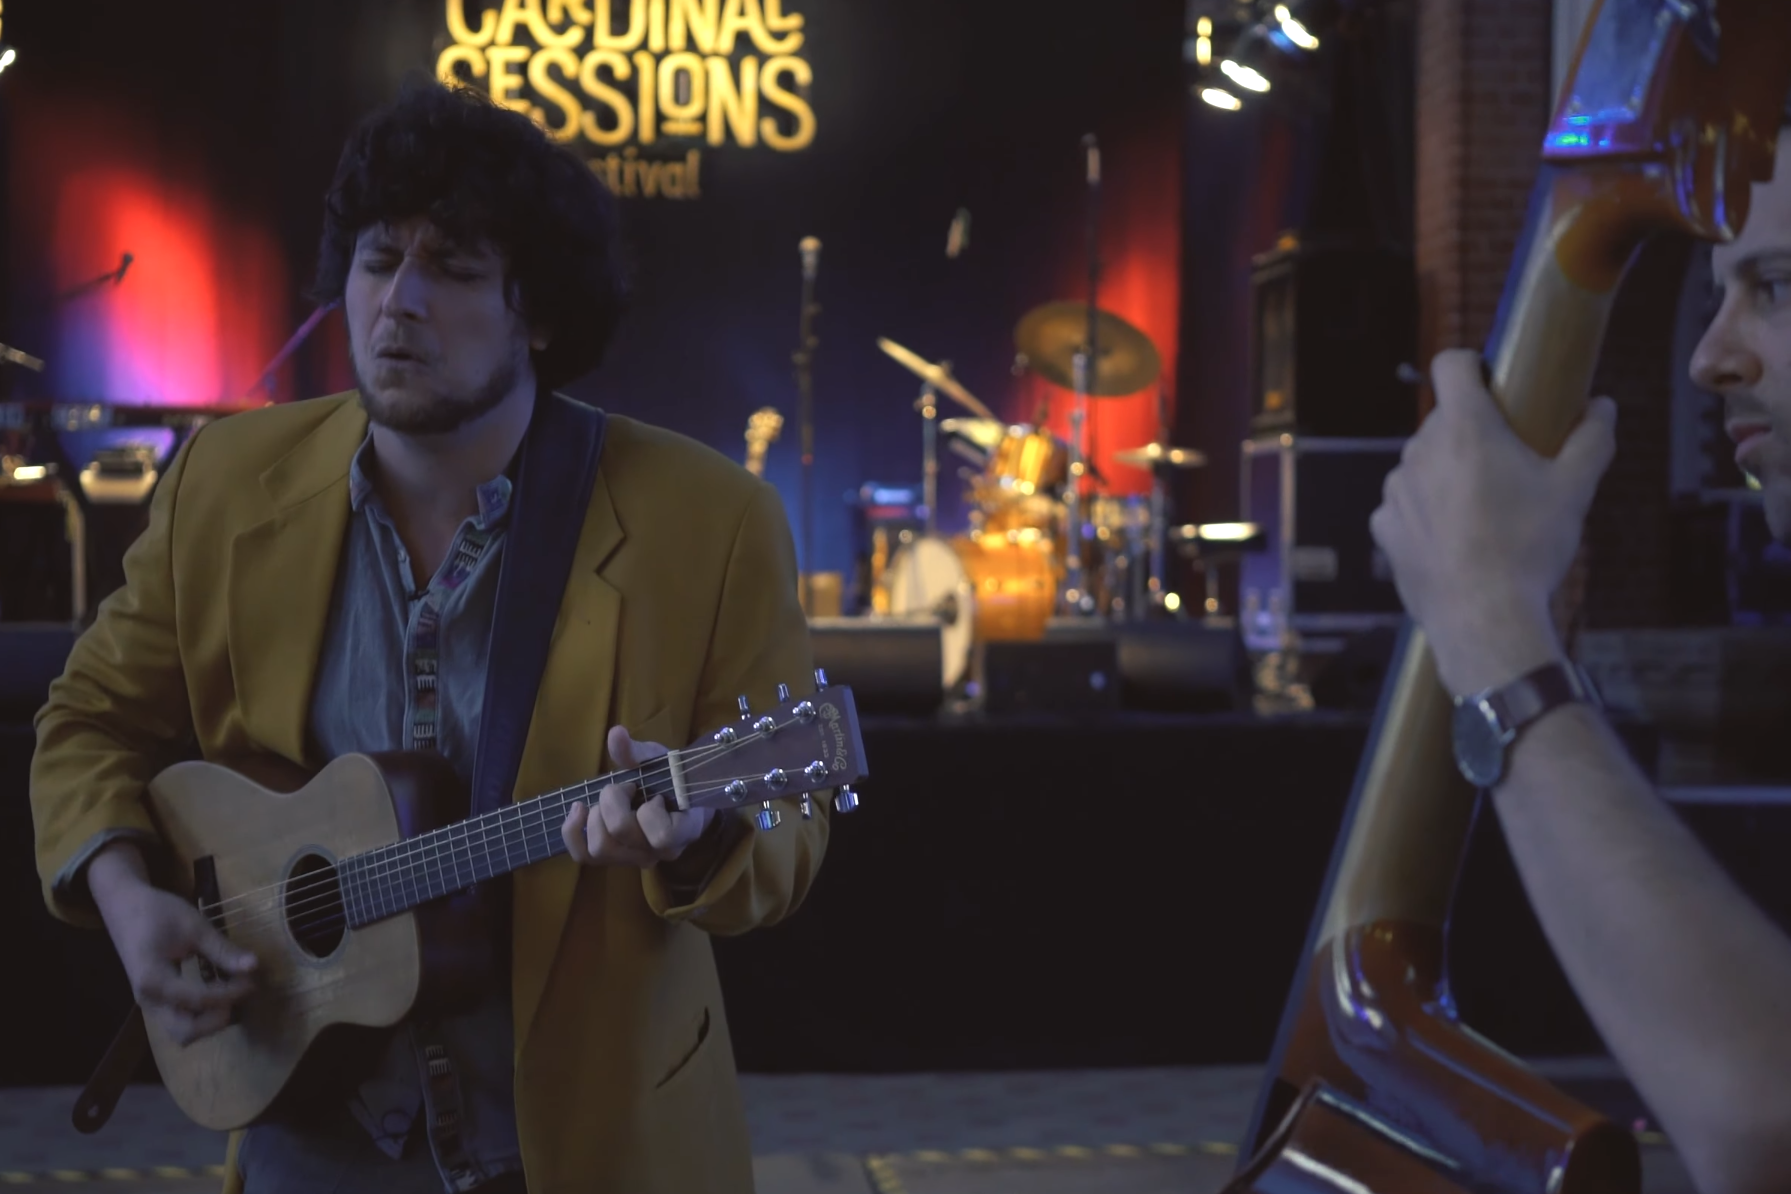 Cardinal Sessions - Live acoustic sessions with your new favorite band